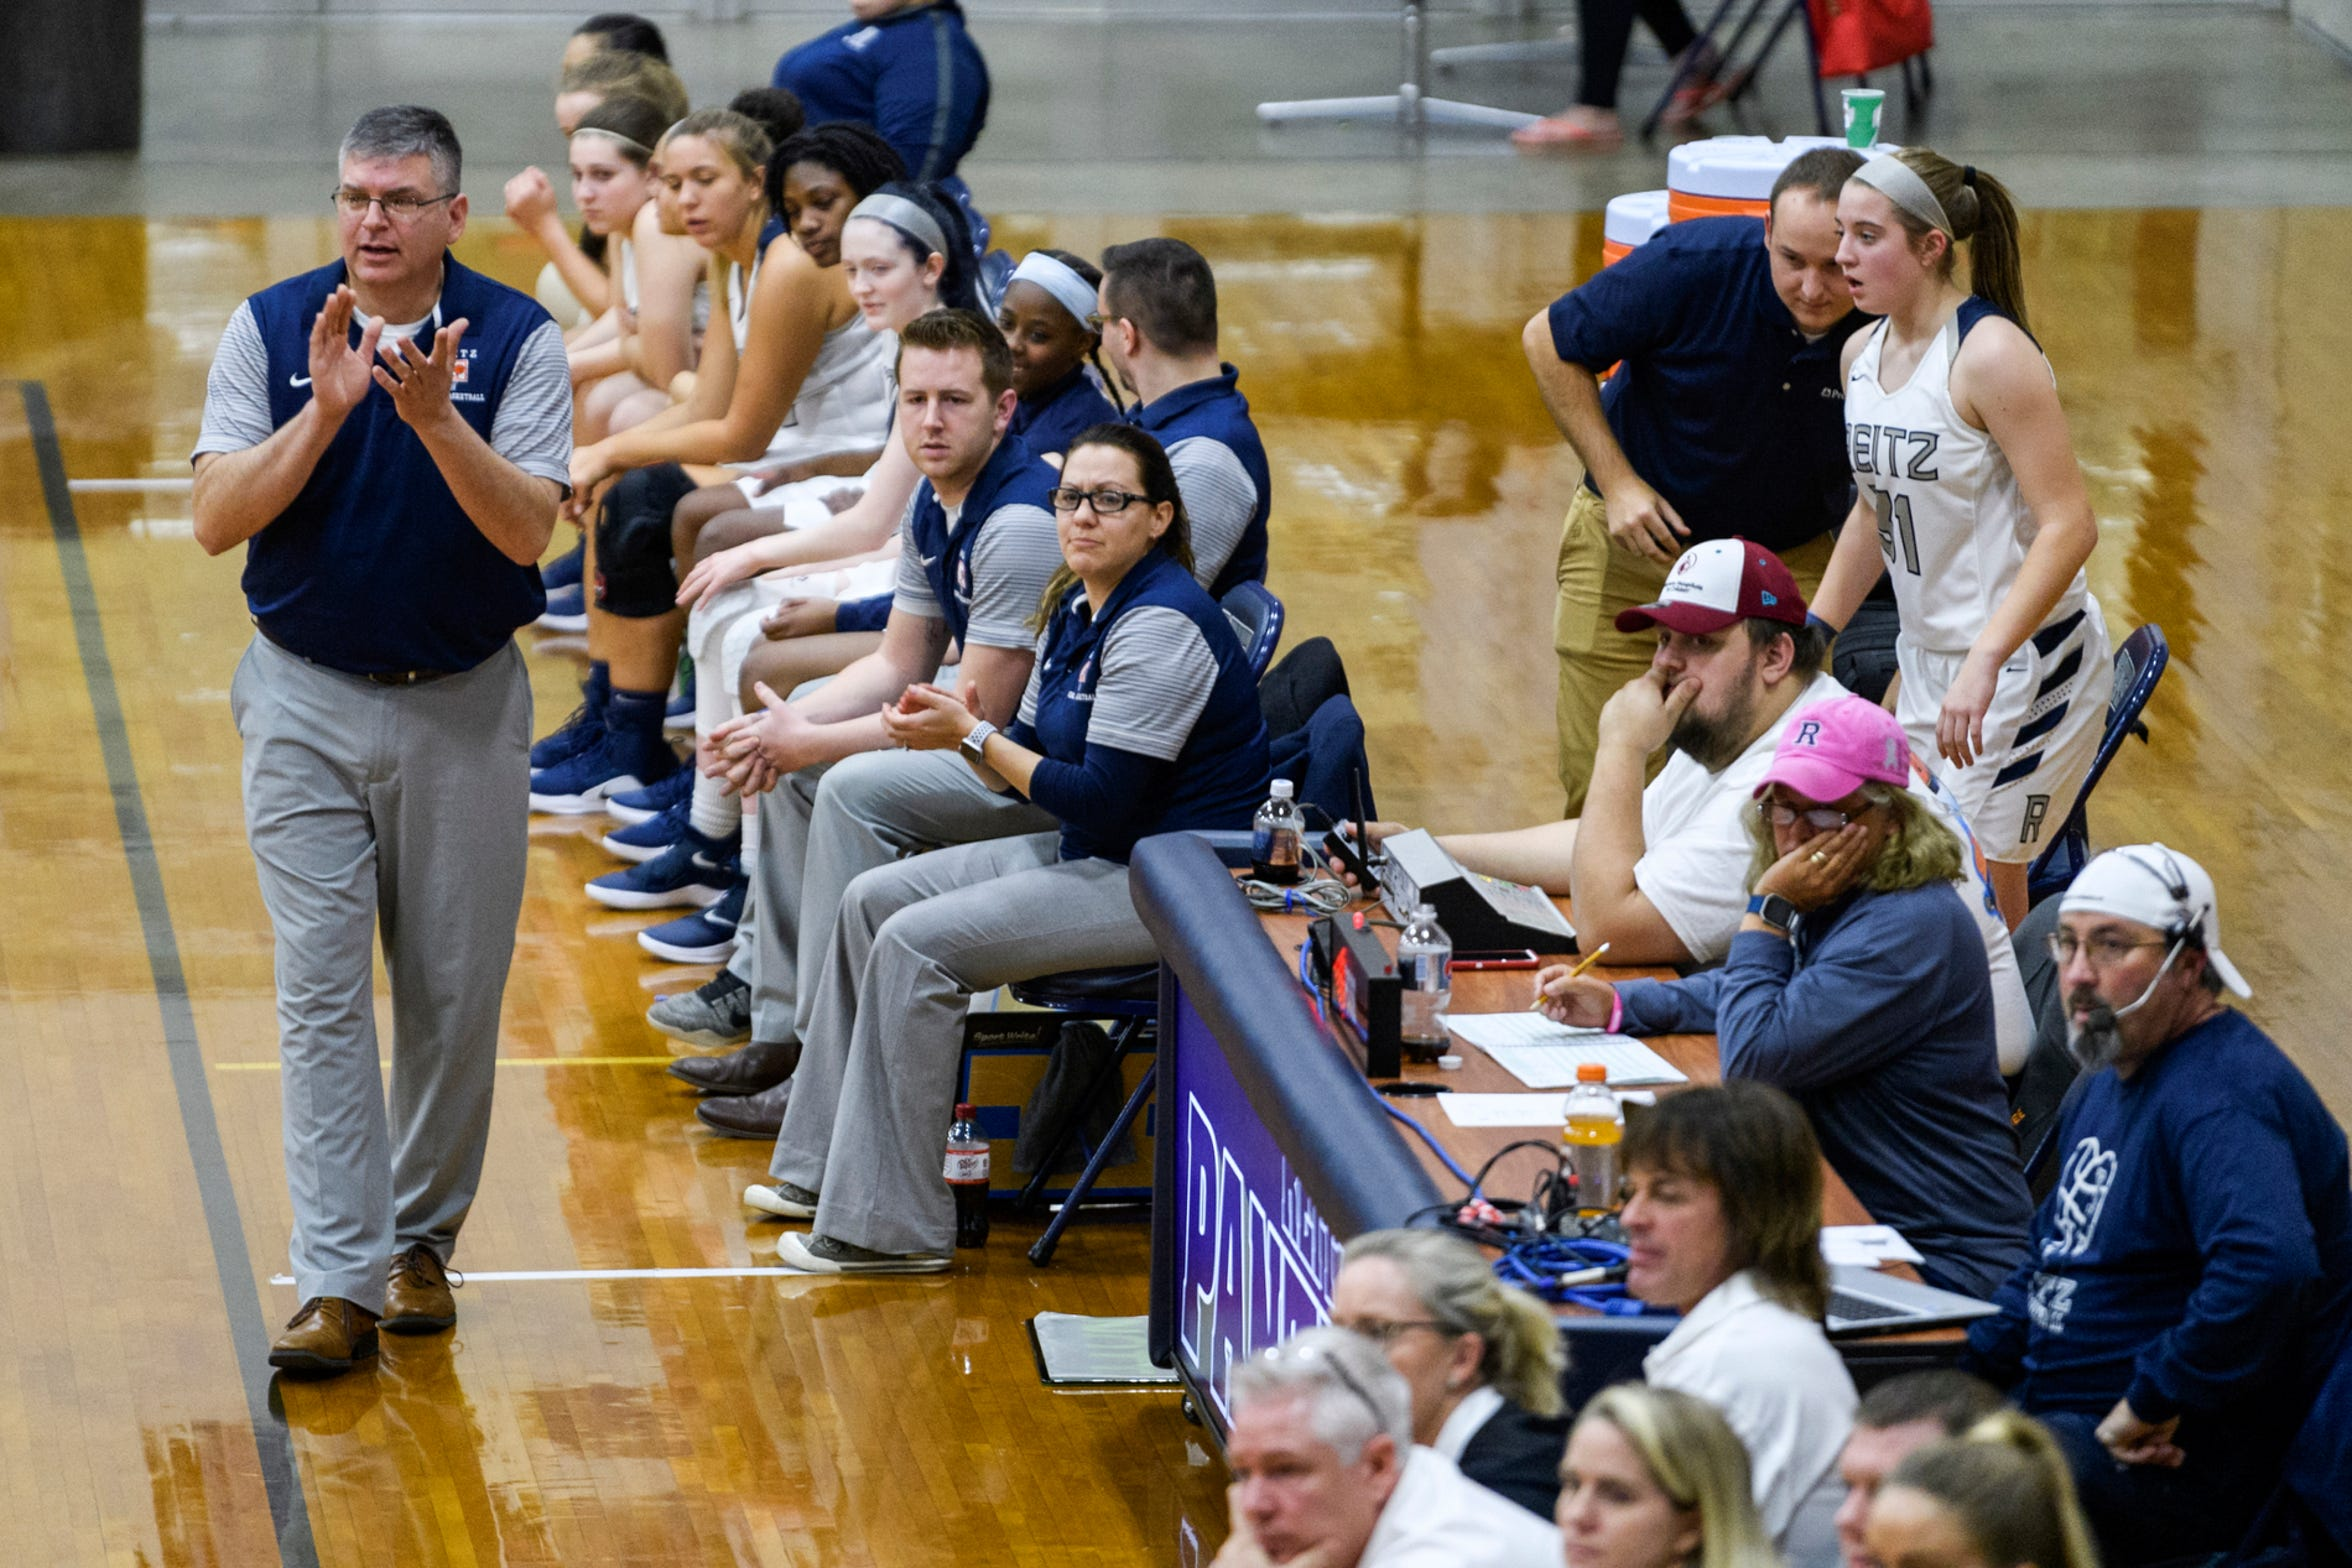 Reitz Head Coach Gary Loveless, left, paces the bench as he watches his team take on the Castle Knights in a conference game at F.J. Reitz High School in Evansville, Ind., Thursday, Jan. 3, 2019. The Panthers were defeated by the Knights, 51-17.